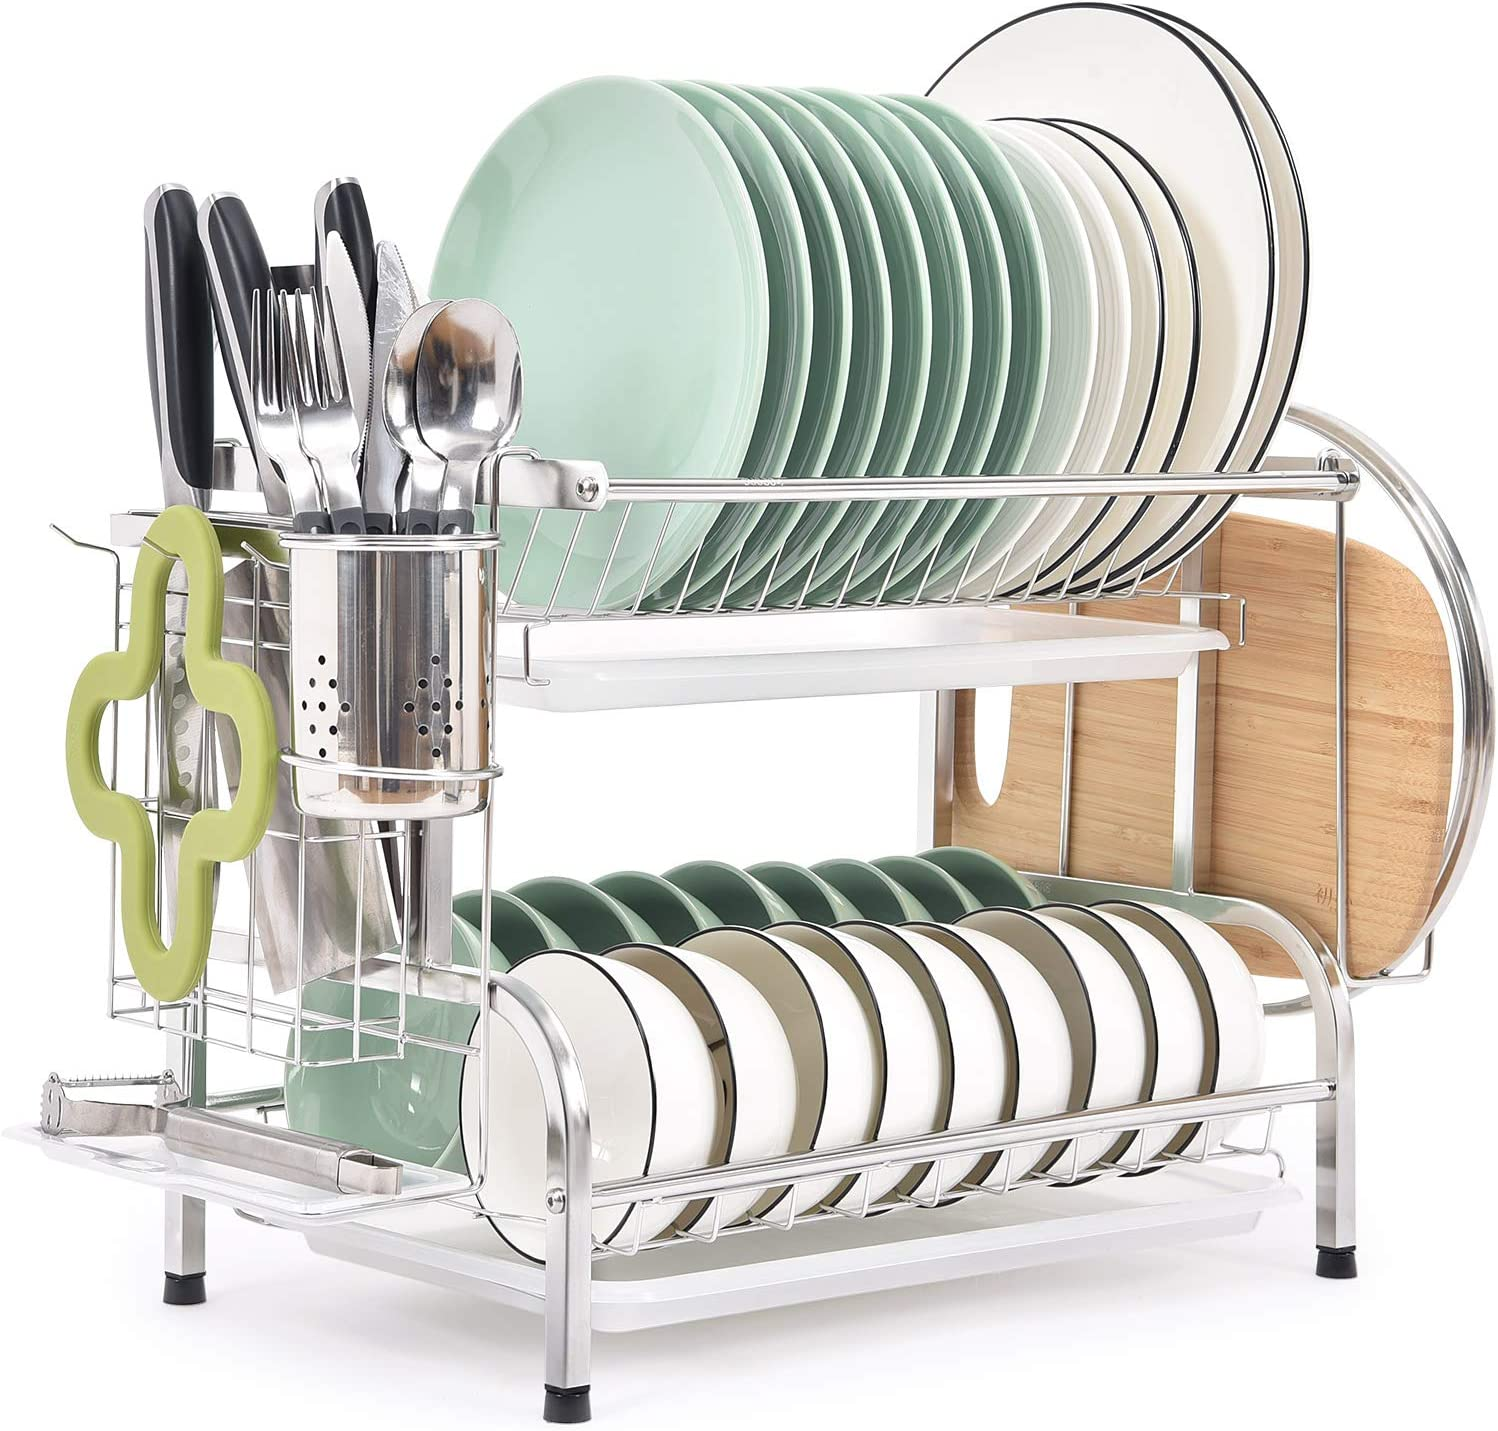 Tomoral Dish Rack 304 Stainless Steel 2 Tier Dish Drying Rack With Drain Board Utensil Holder Cutting Board Holder Rustproof Dish Drainer For Kitchen Countertop Silver Kitchen Dining